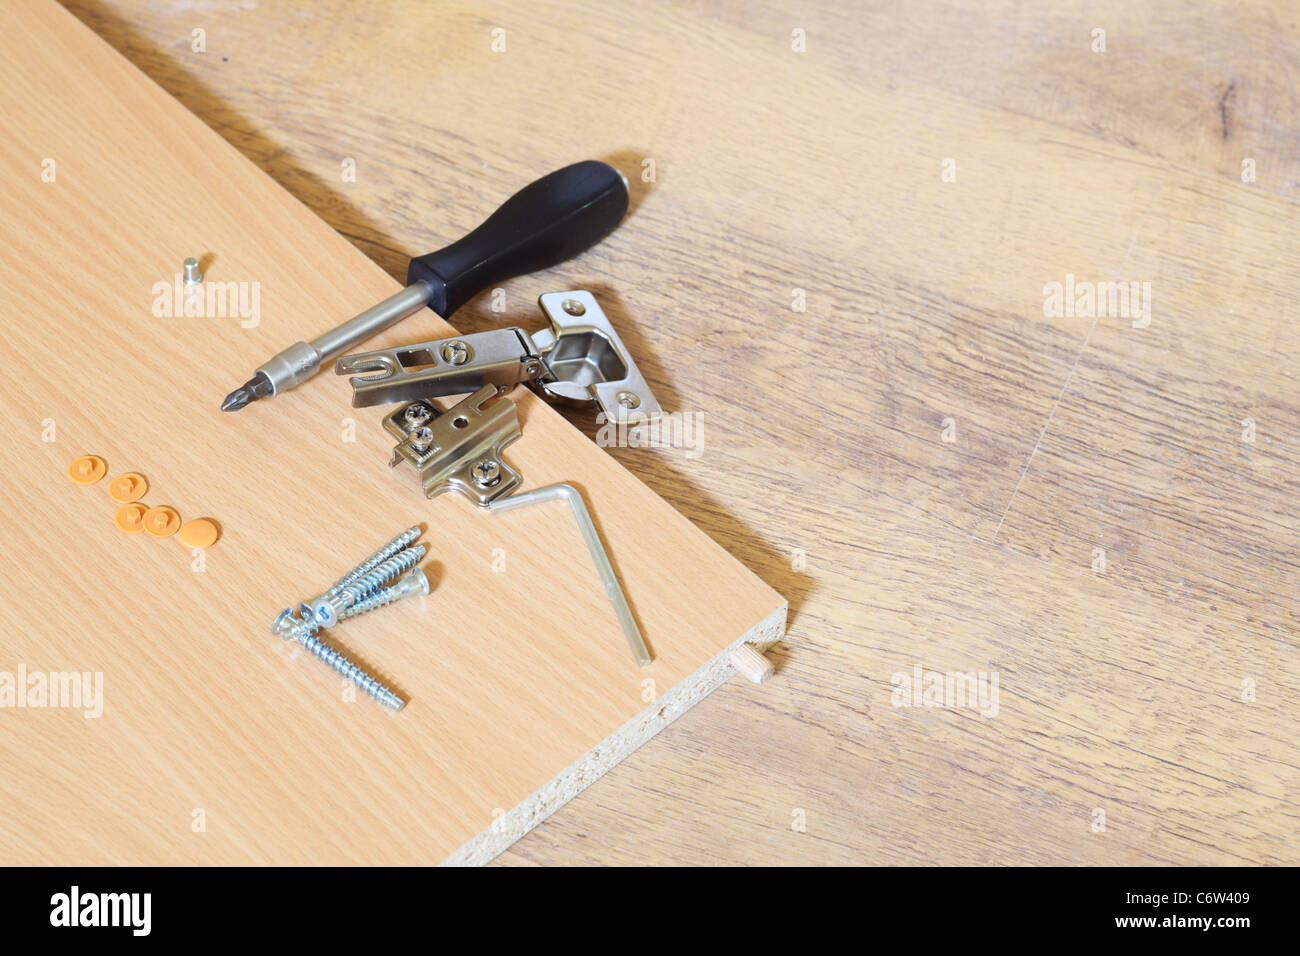 Rearrange Furniture Wooden Nobody Stock Photo With Self Assembly Furniture.